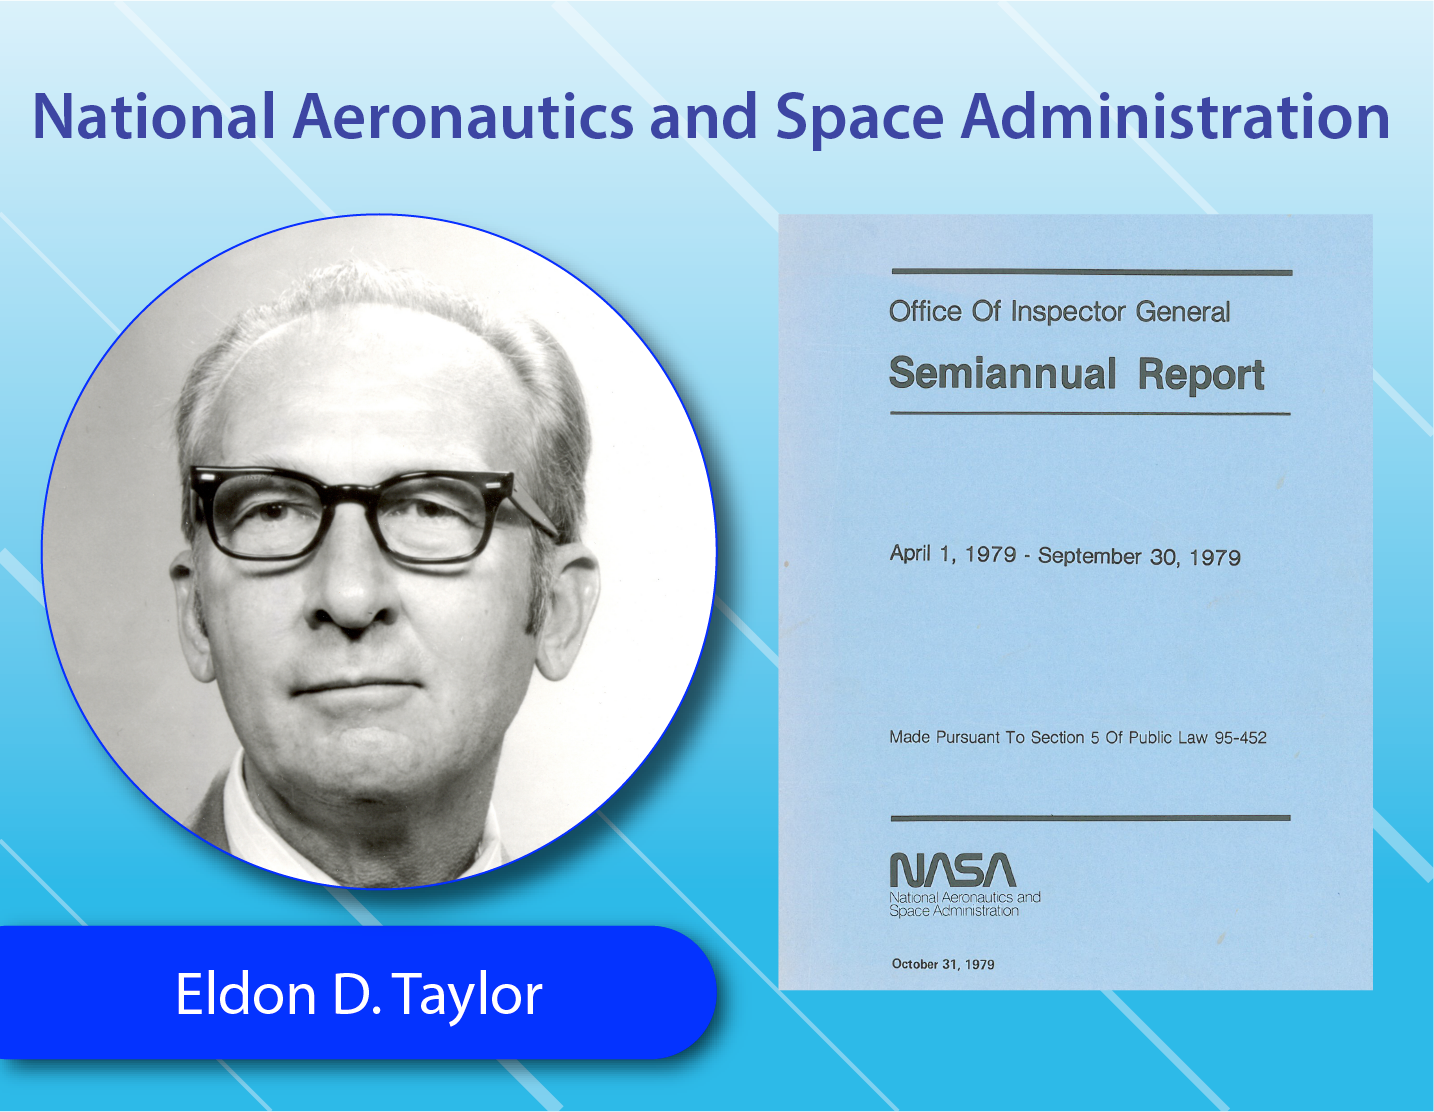 National Aeronautics and Space Administration - Eldon D. Taylor